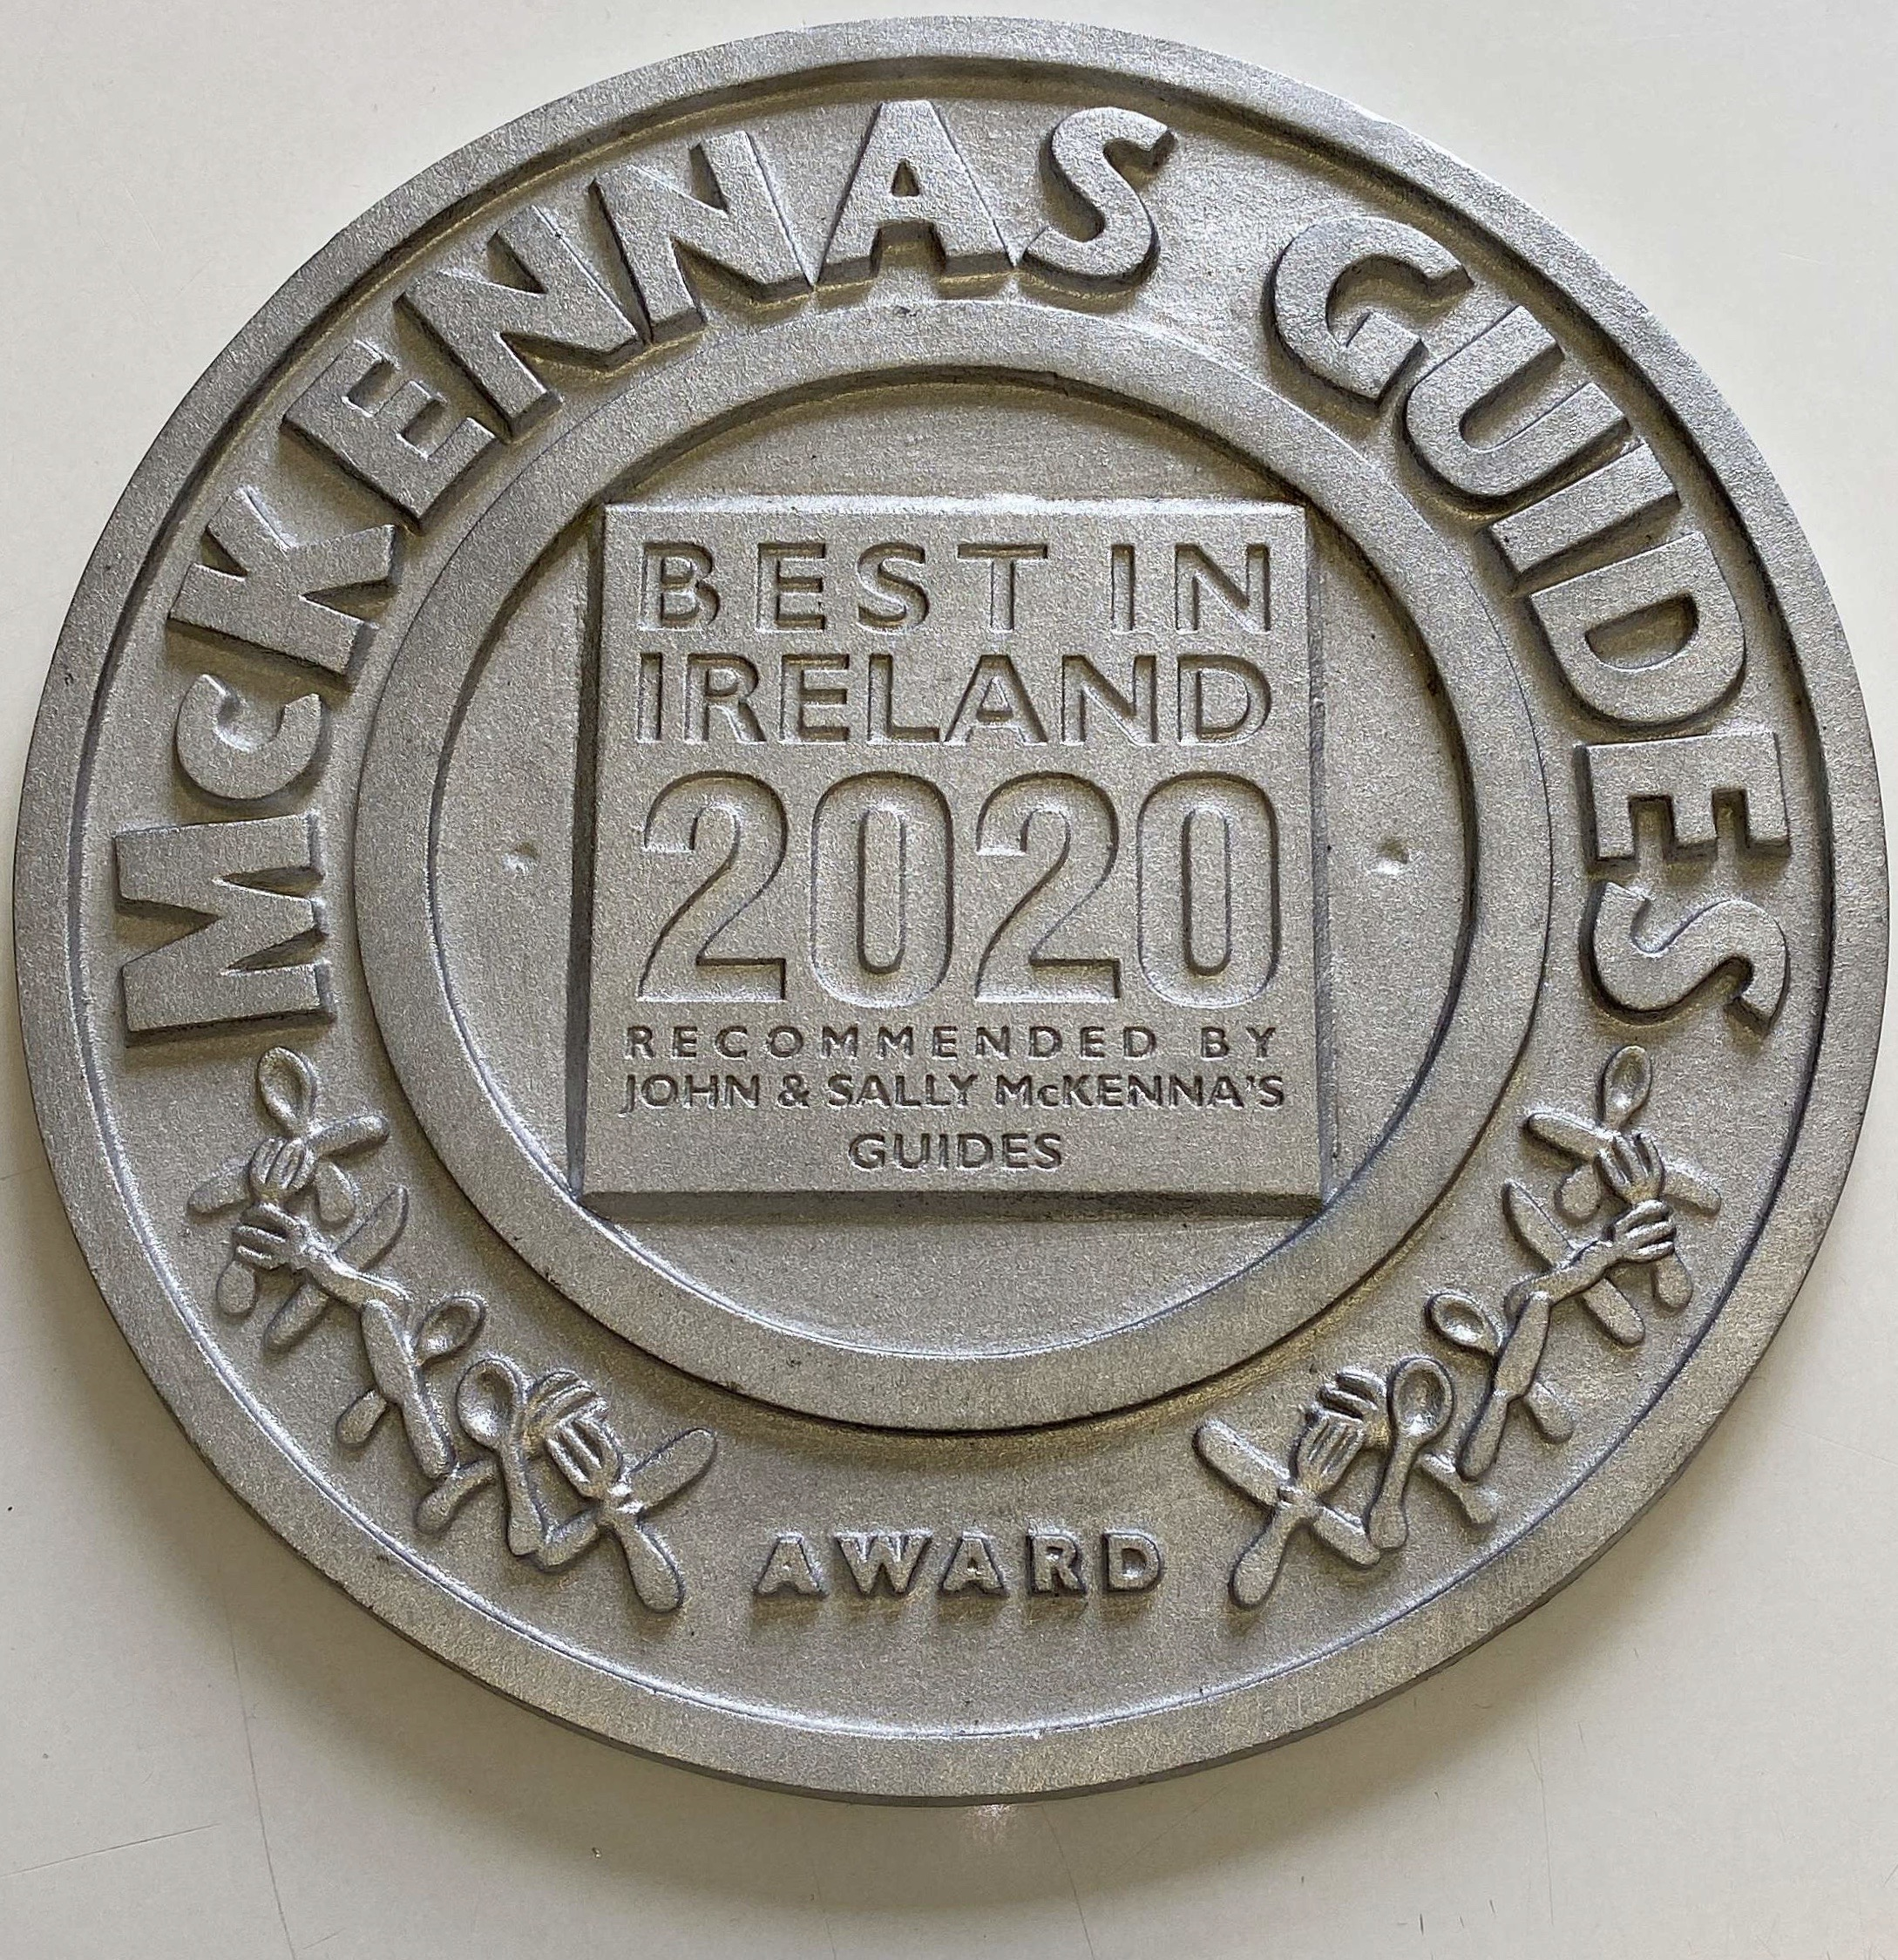 McKennas' Guides Best in Ireland 2020